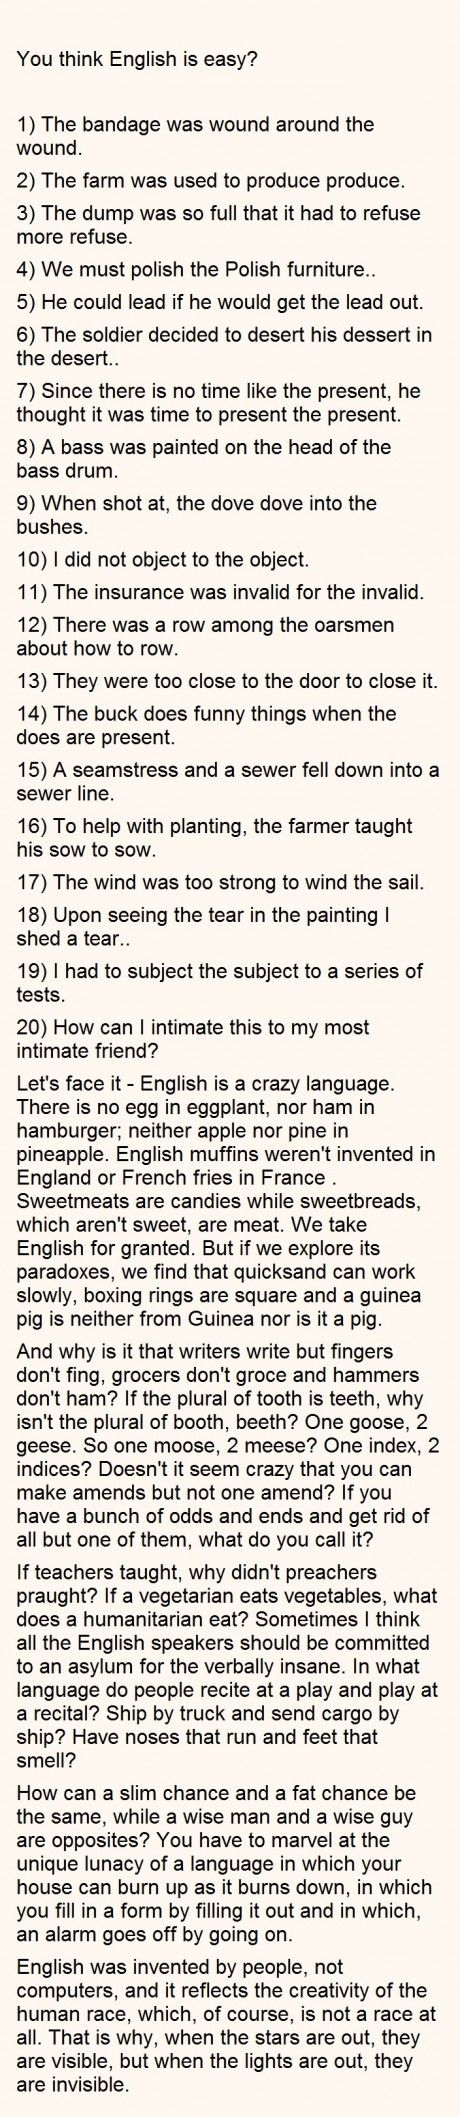 Guy from UK writes the strangest things about American and I agree with most of them! Haha